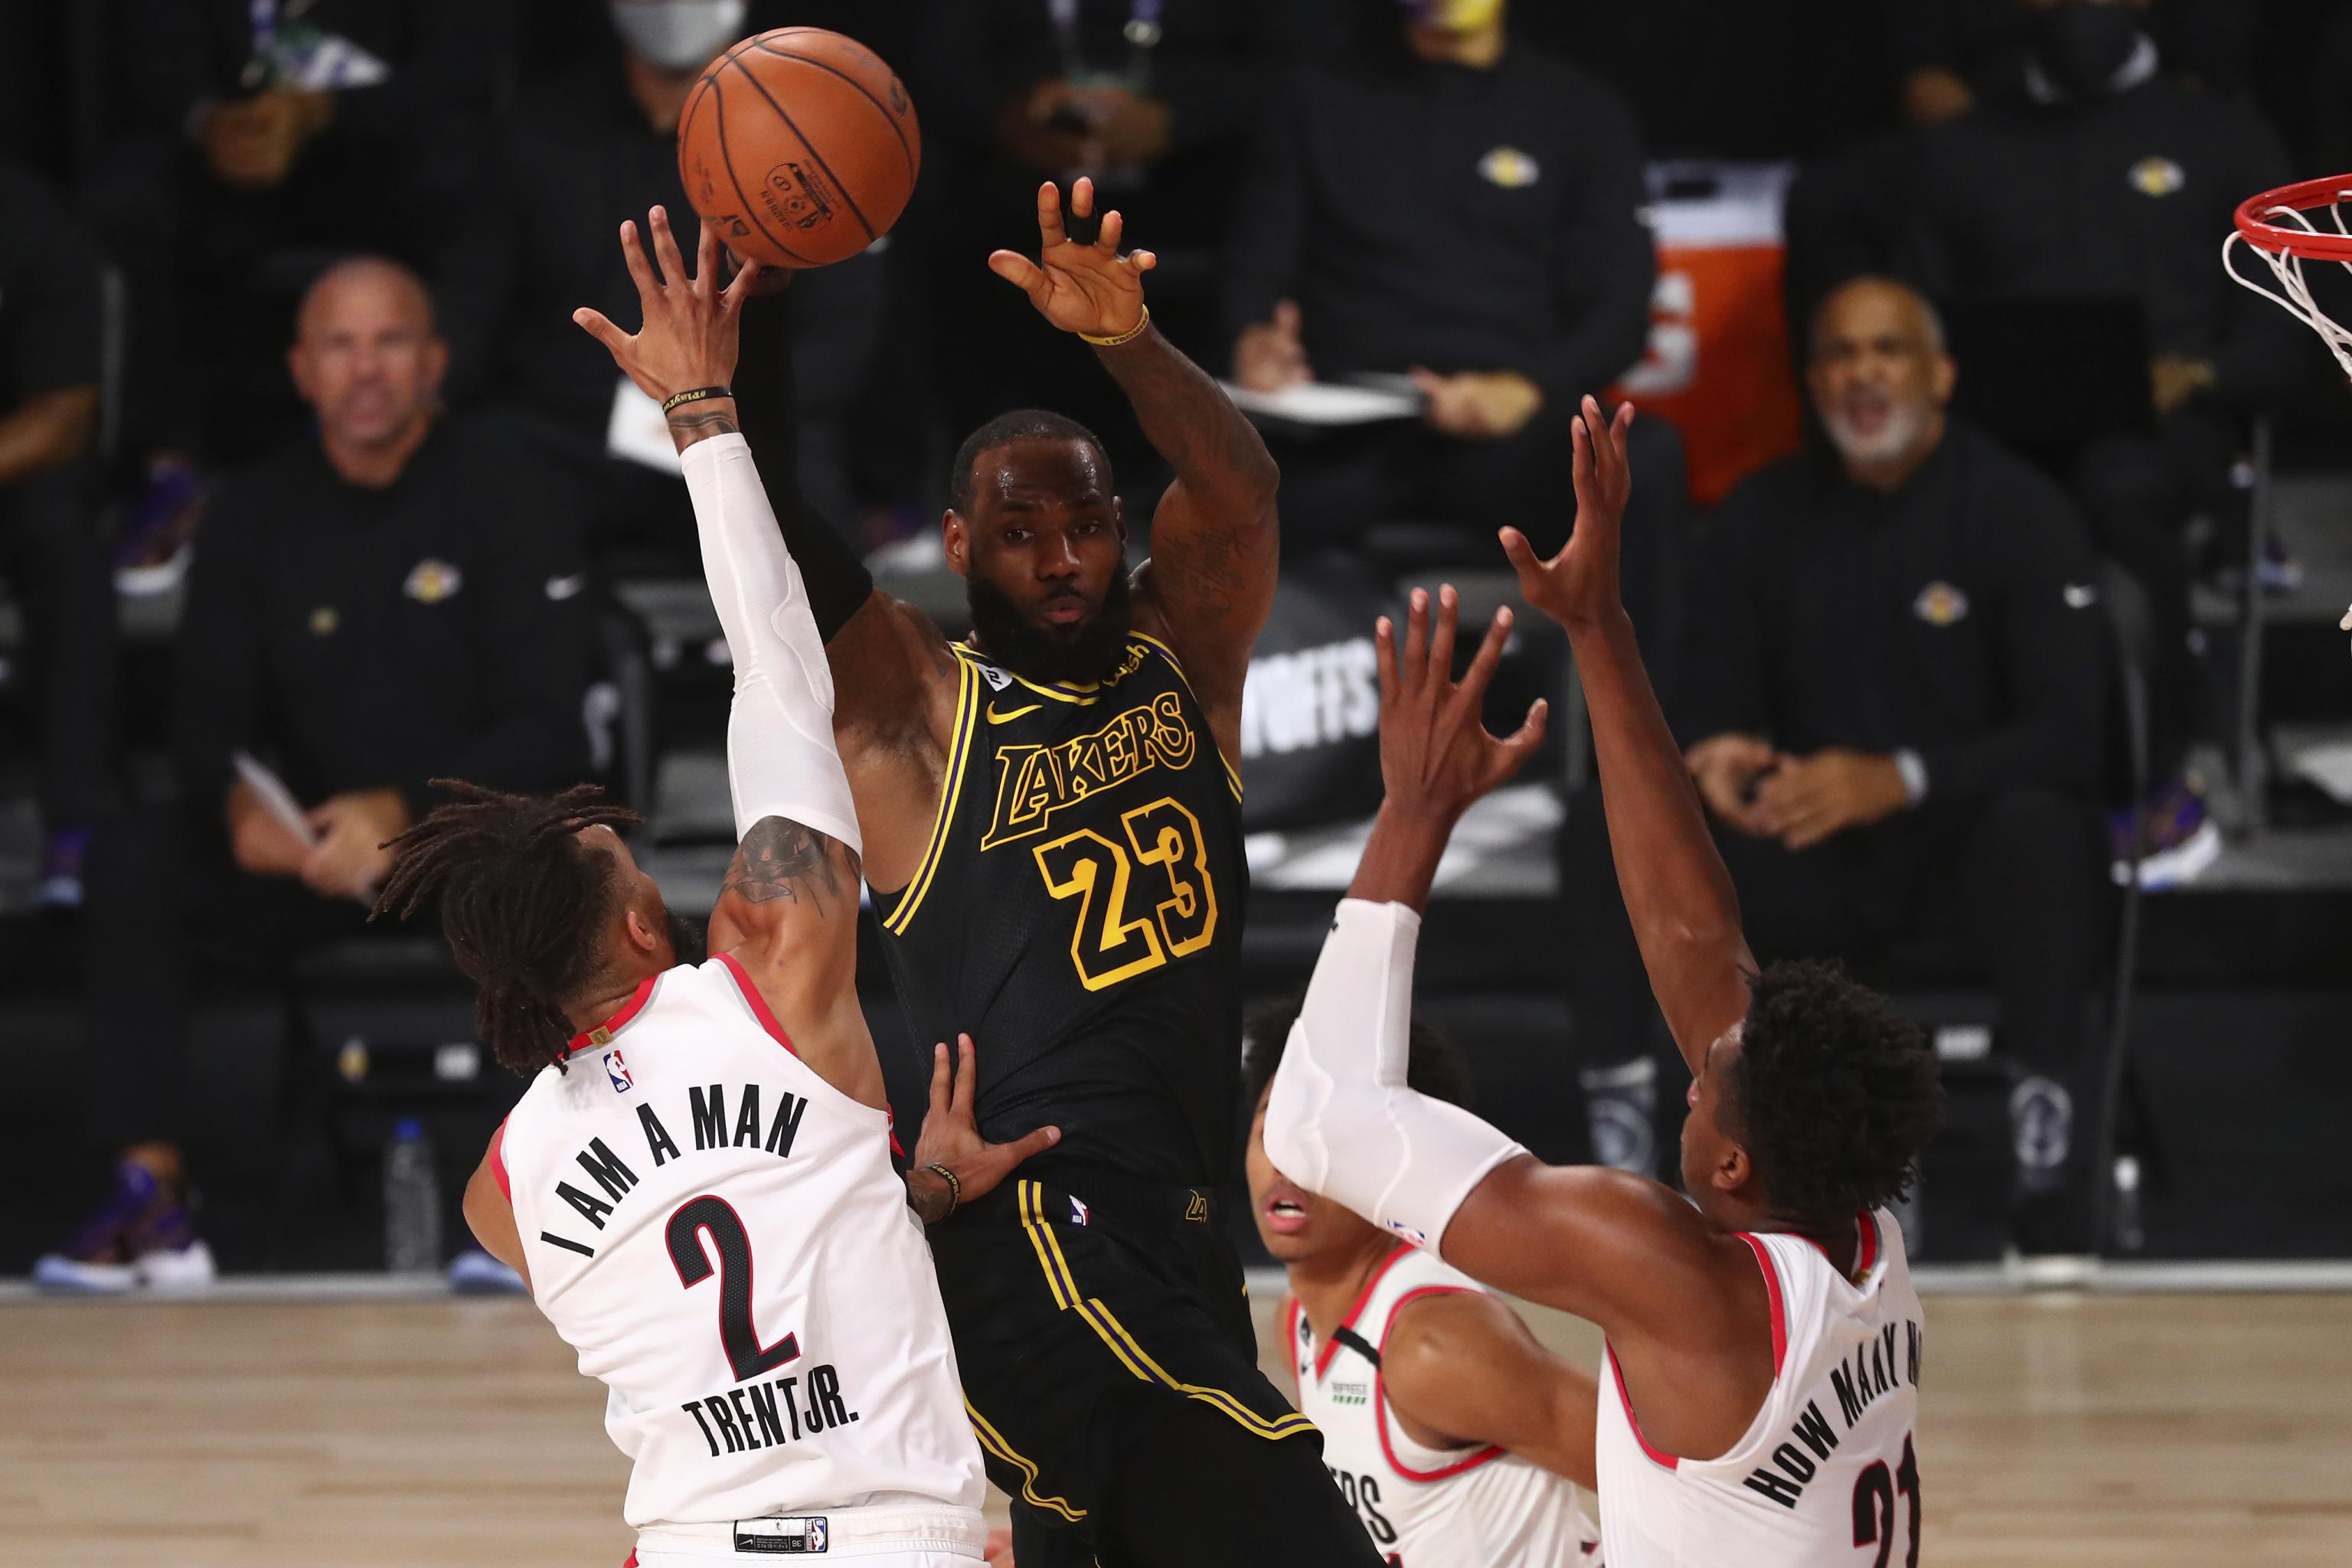 Lebron James Anthony Davis Power Lakers To Blowout Win Over Blazers In Game 4 Bleacher Report Latest News Videos And Highlights